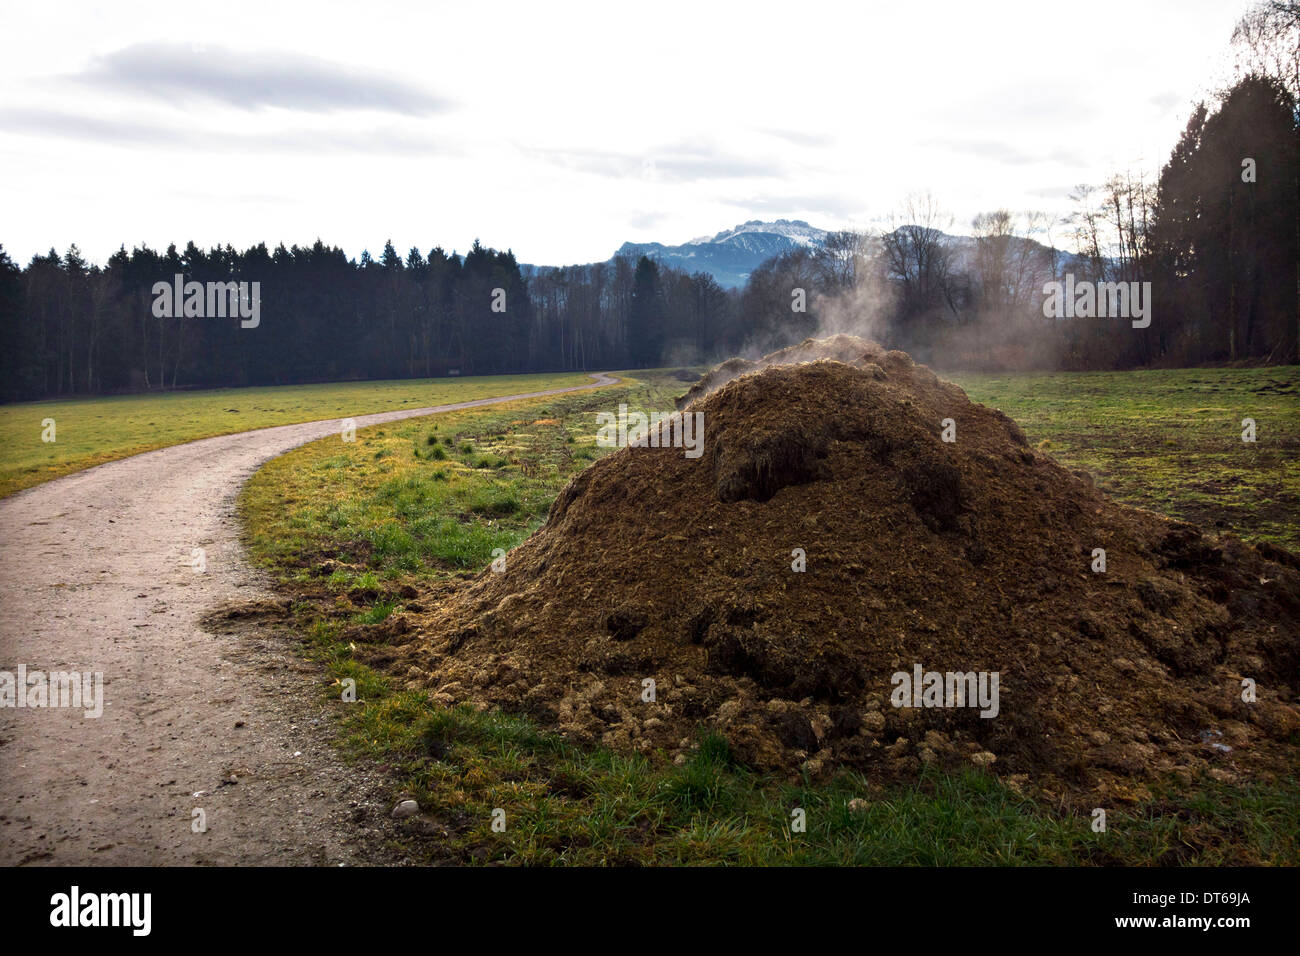 Methane gas escaping from stockpile of cow manure and waste, Chiemgau, Upper Bavaria, Germany Europe - Stock Image